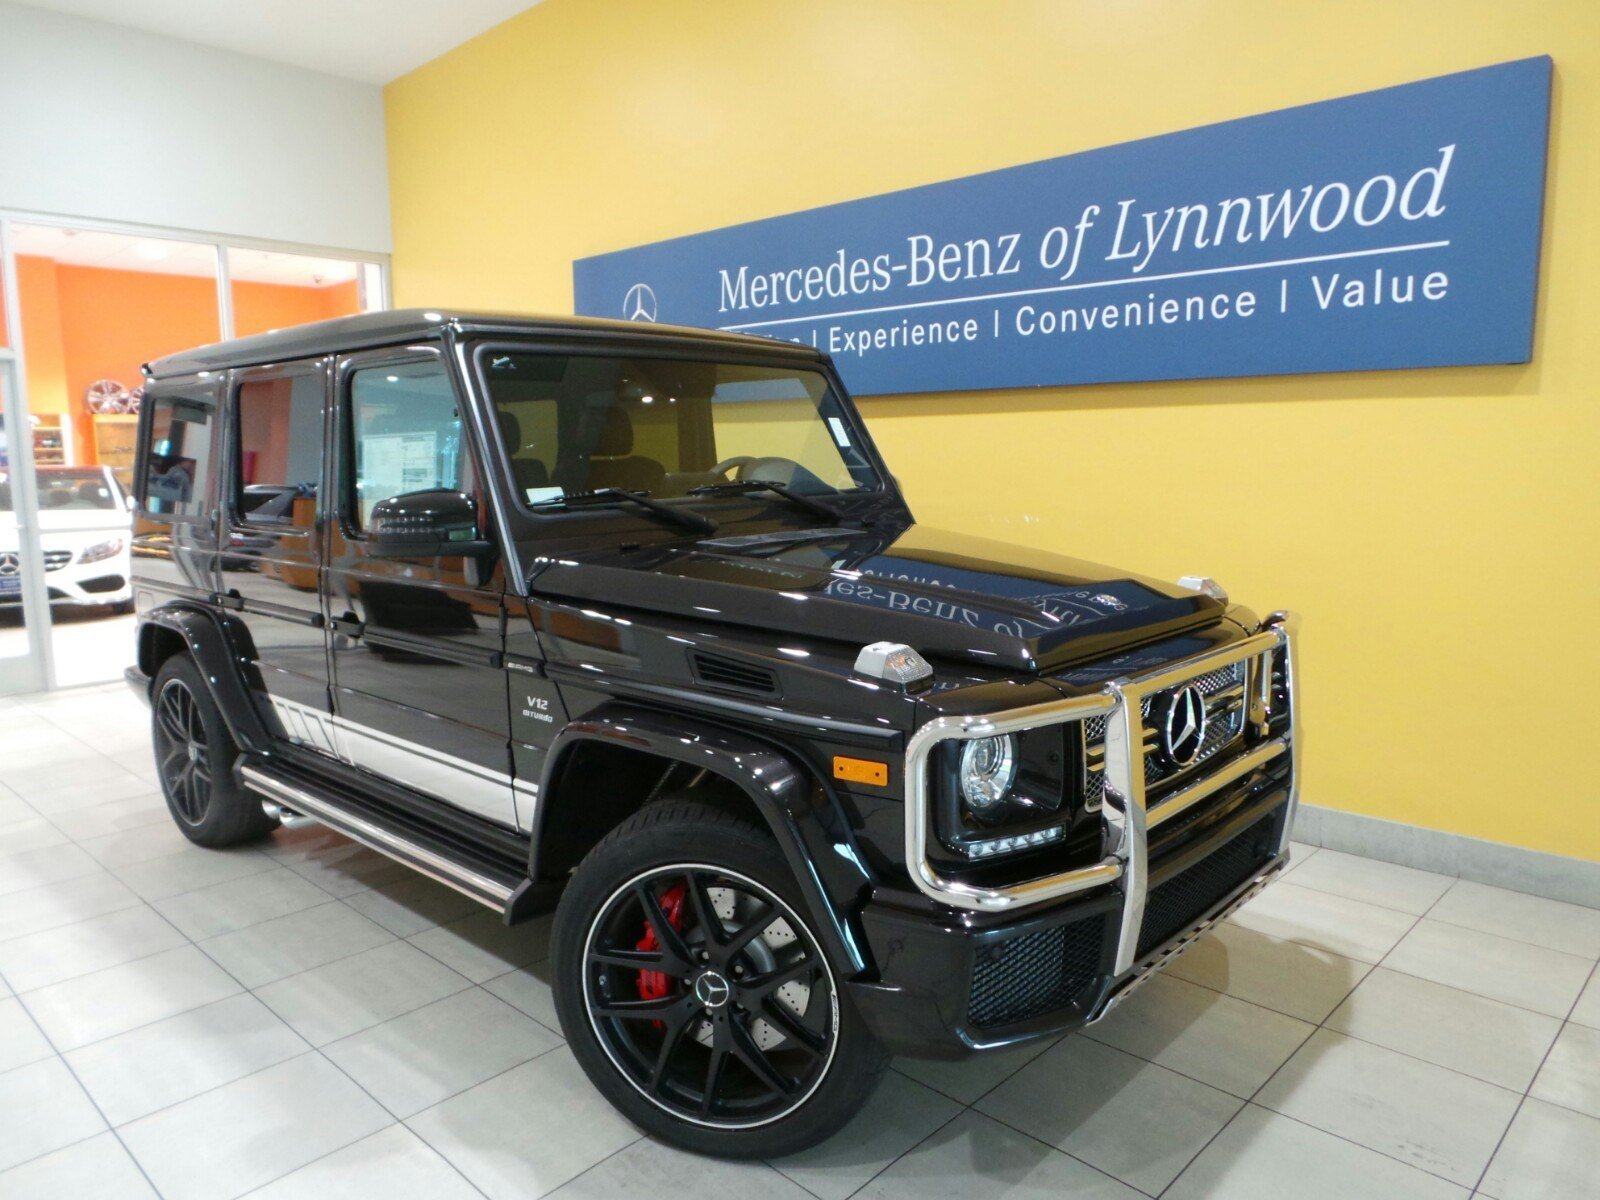 New 2017 mercedes benz g class amg g65 4matic suv in for 2017 mercedes benz g class msrp